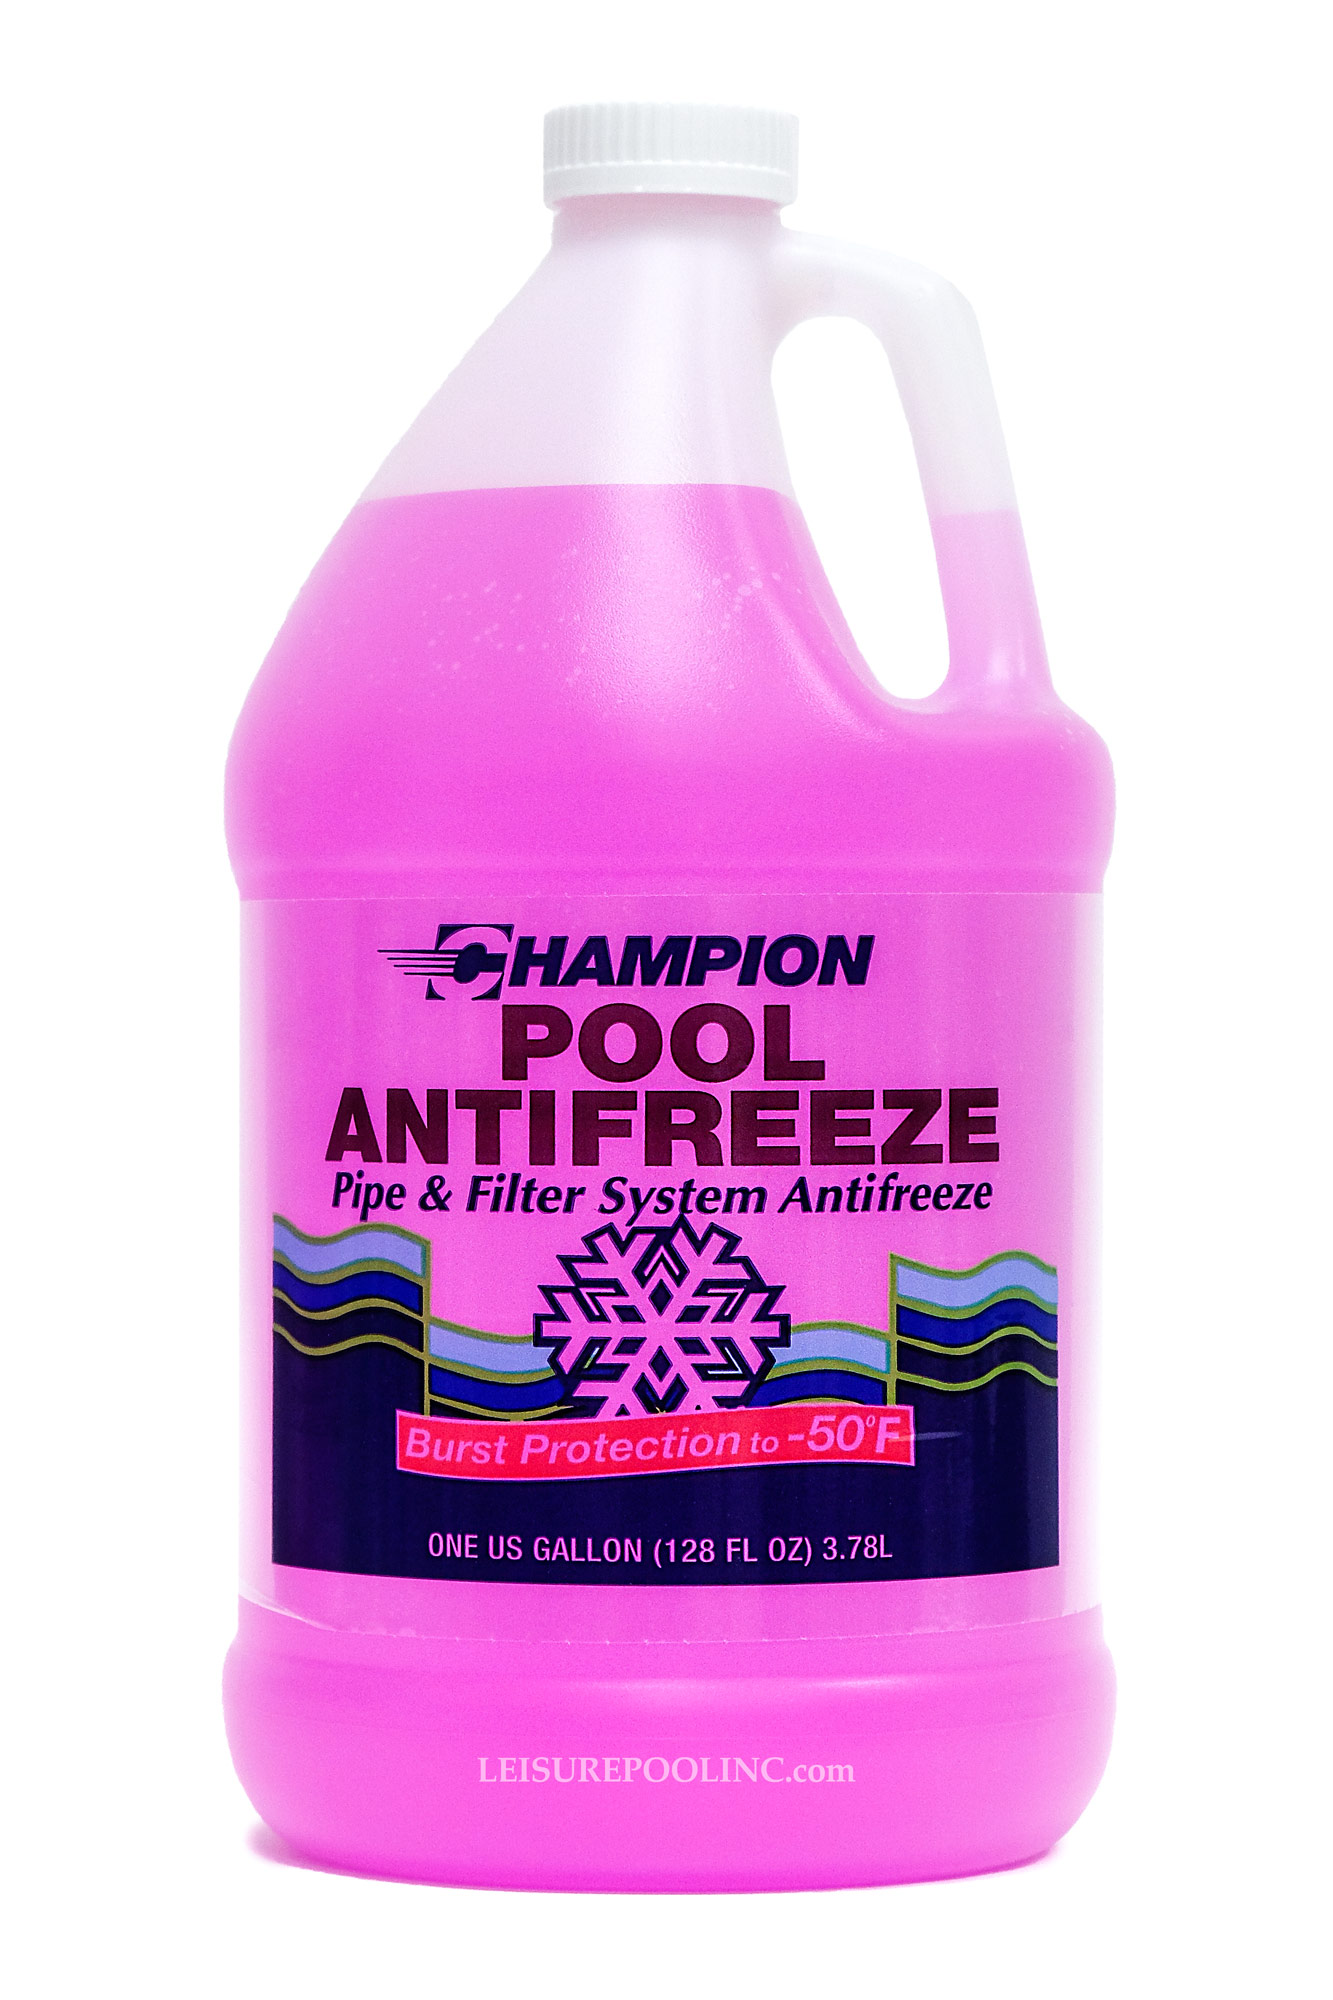 Swimming Pool Anti Freeze For Sale Full Case 4 Gallons Leisure Pool